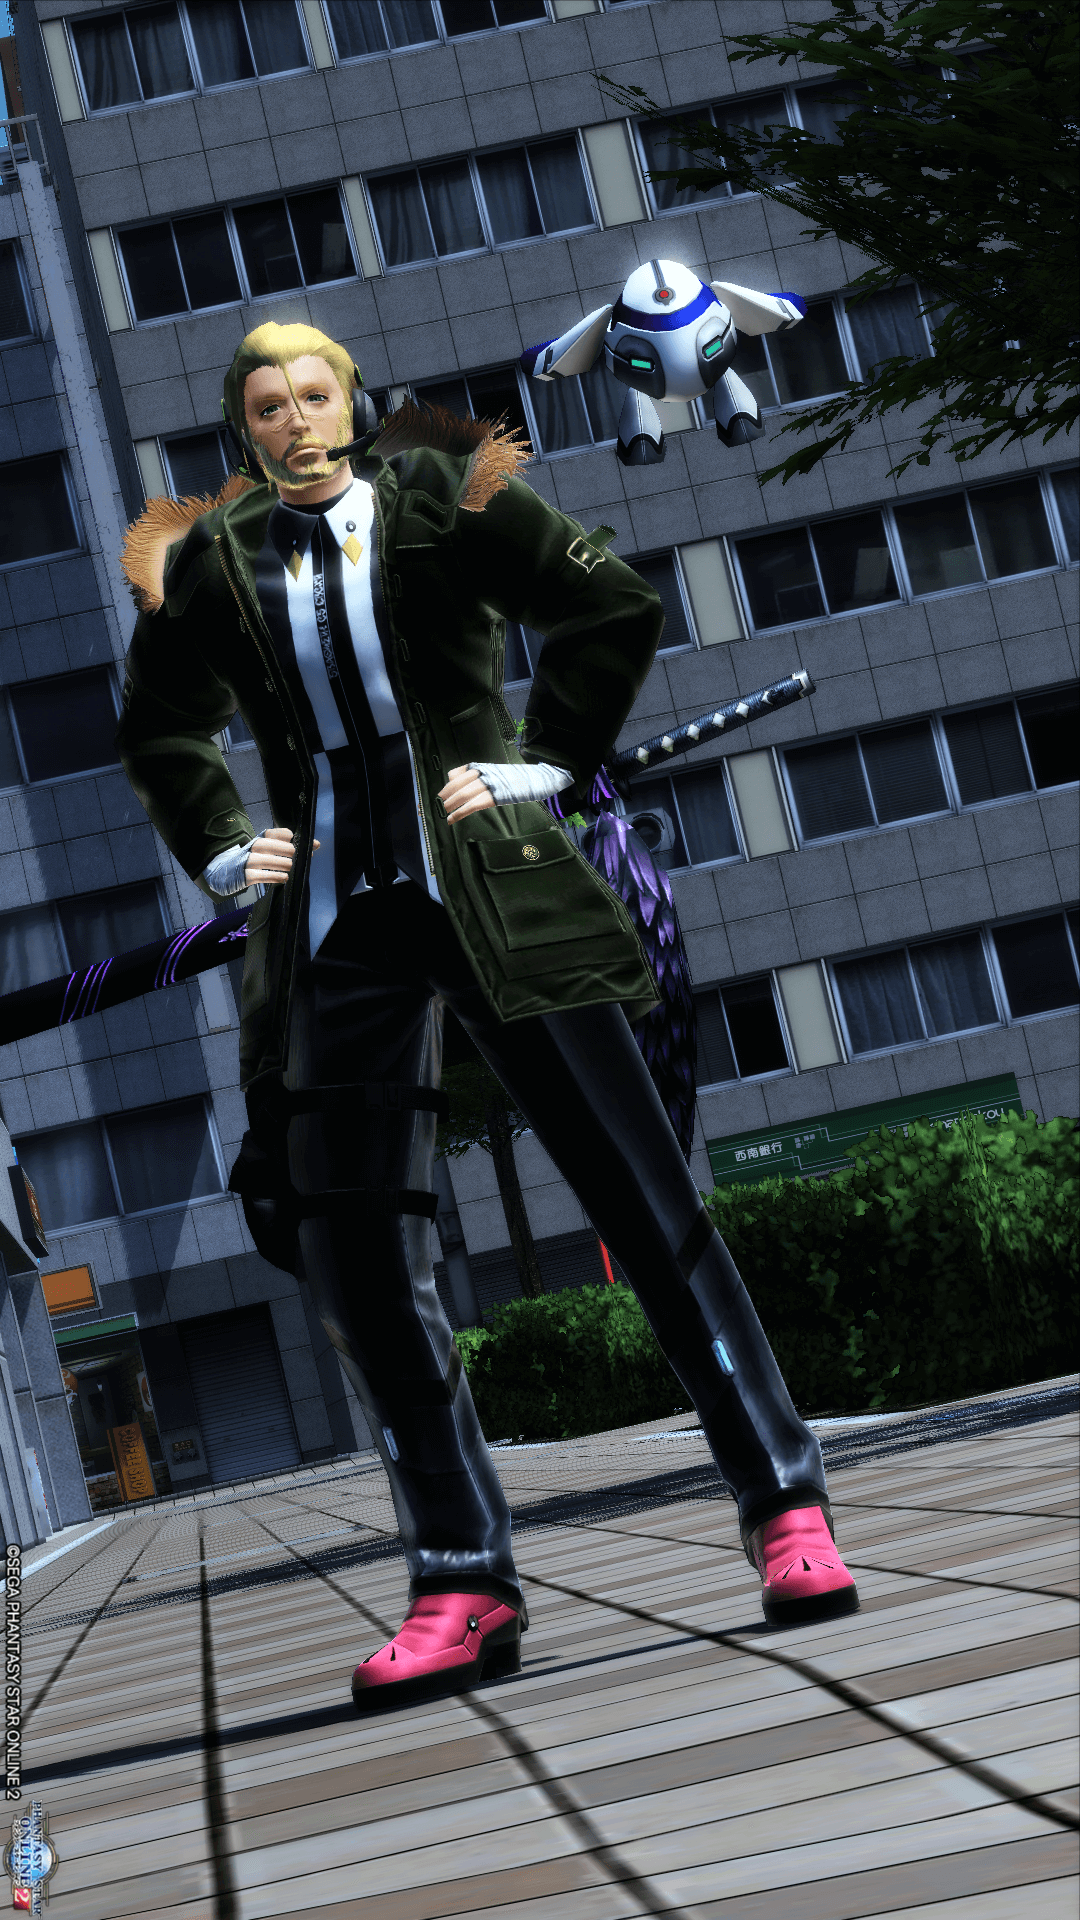 pso20160215_183947_002.png